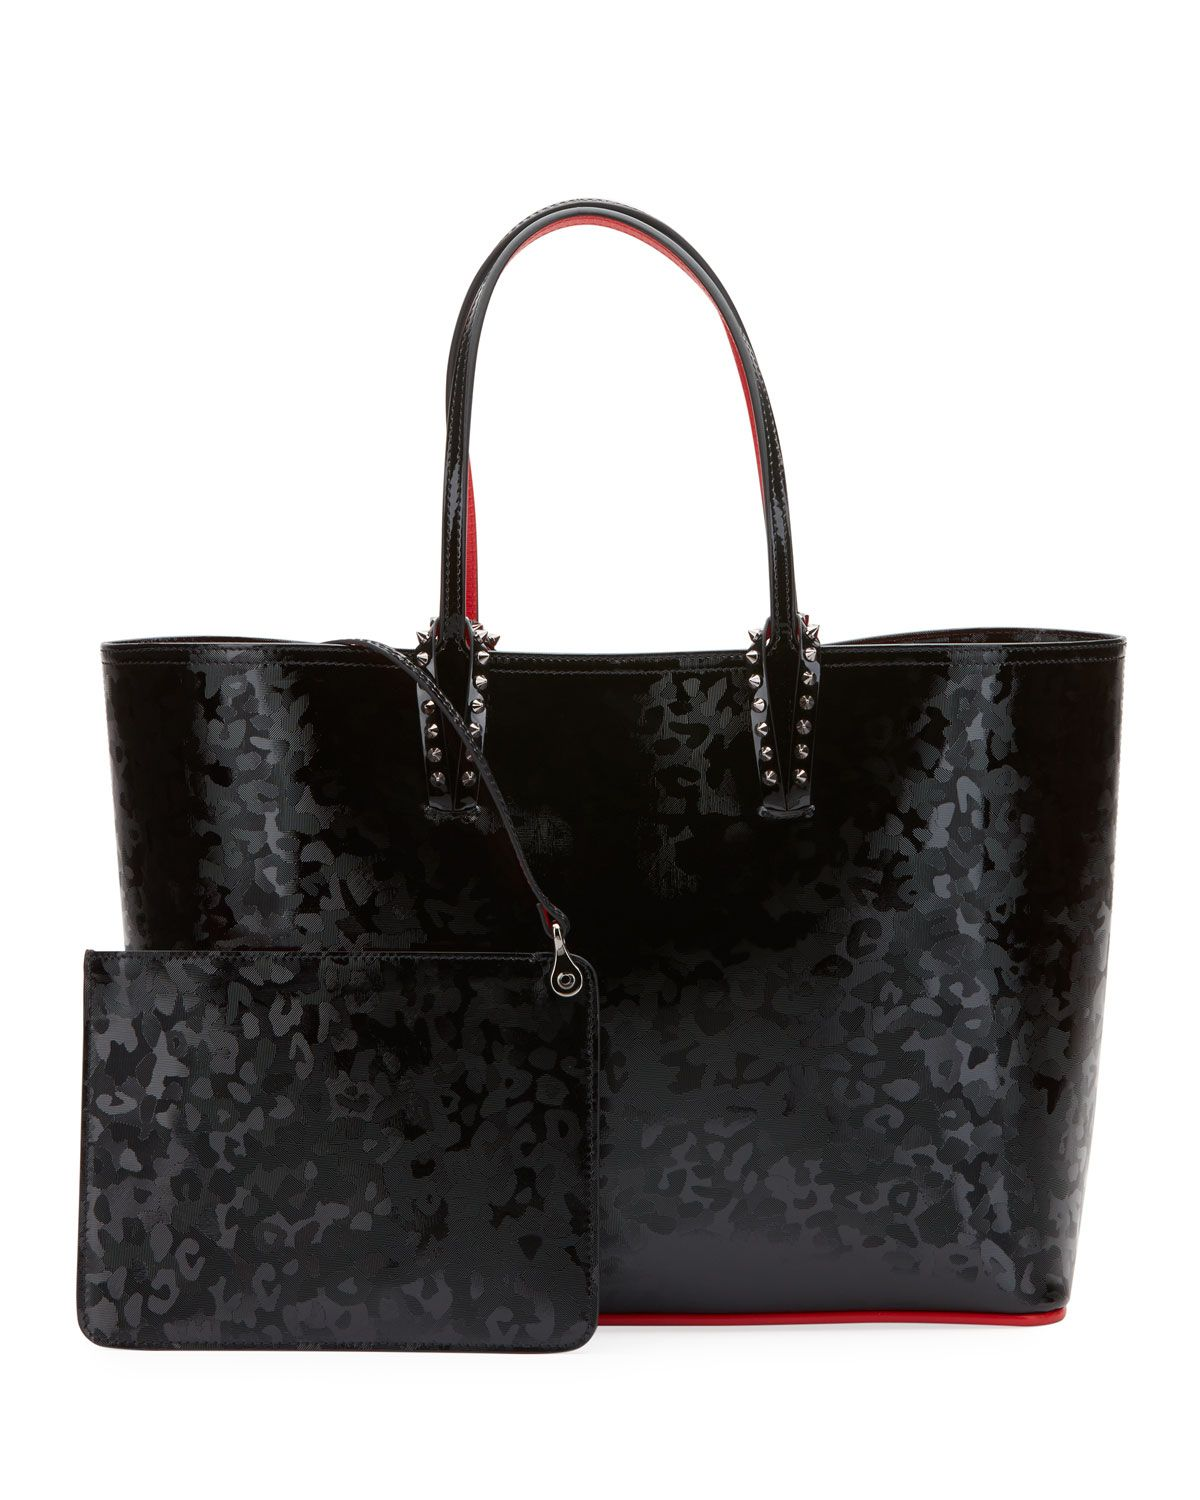 dd3694793ab Exclusive Cabata Patent Panther   Products   Bags, Christian ...